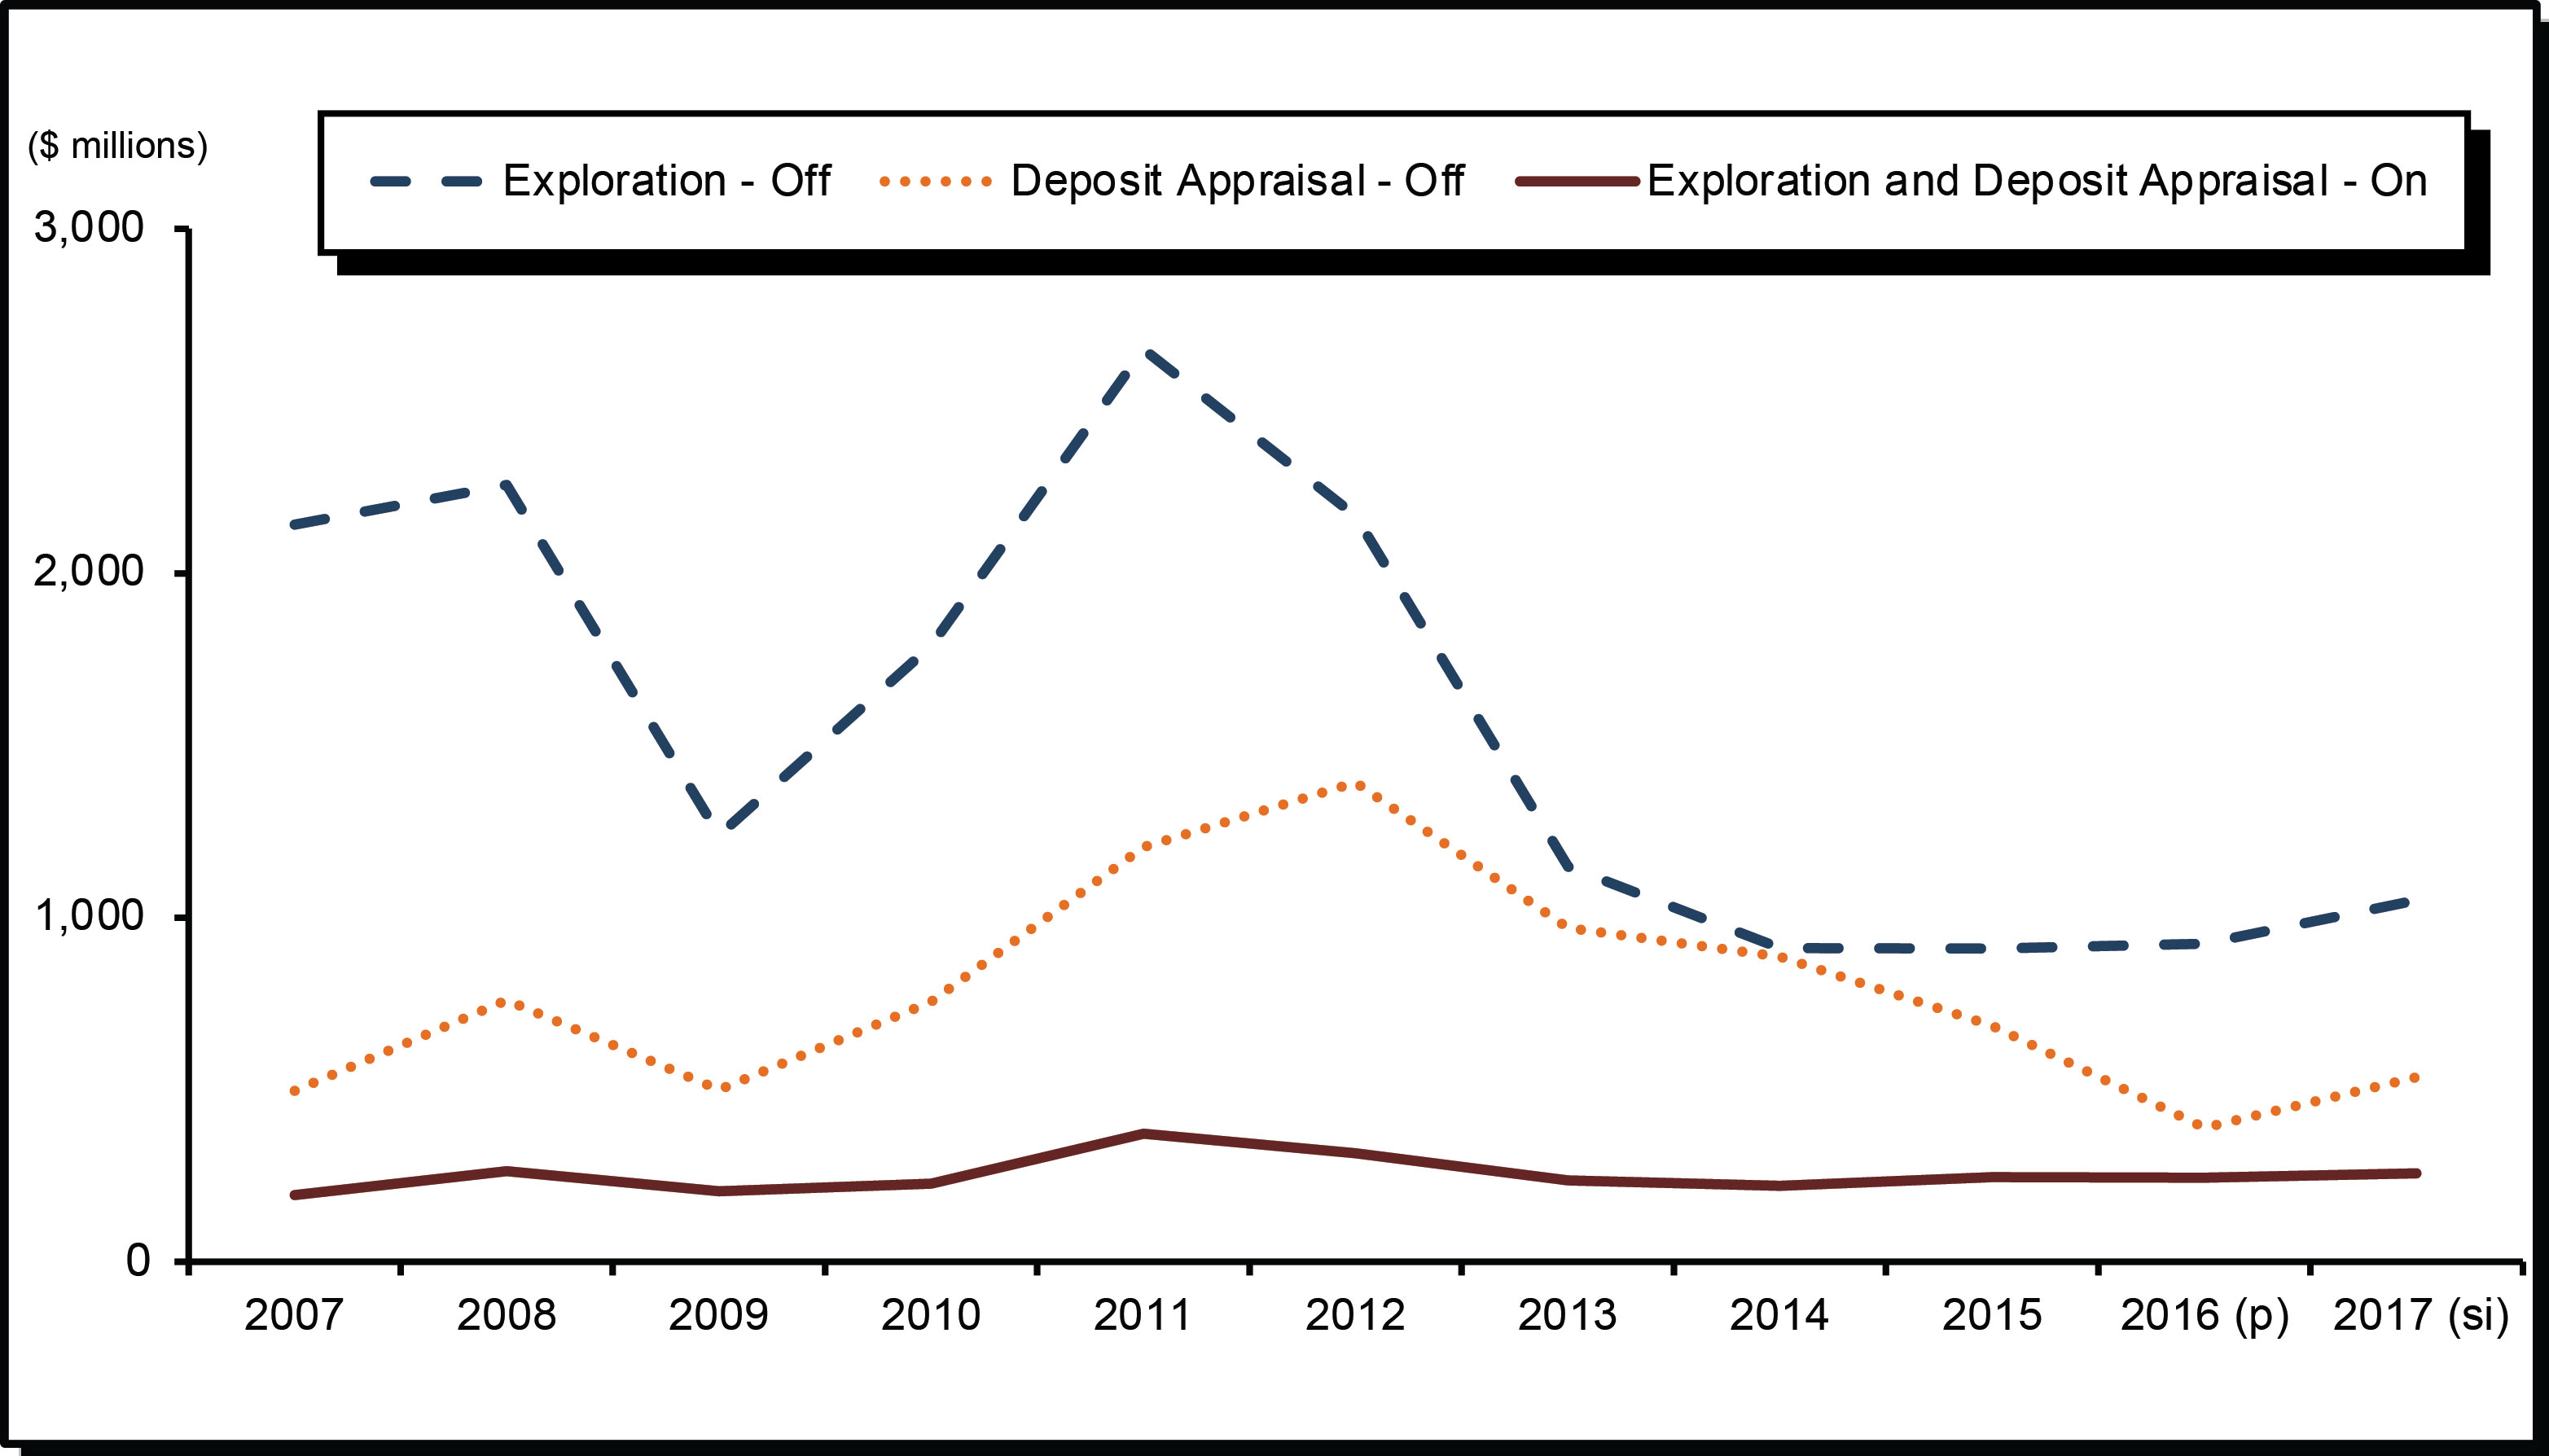 Figure 5 is a line chart showing exploration and deposit appraisal expenditures